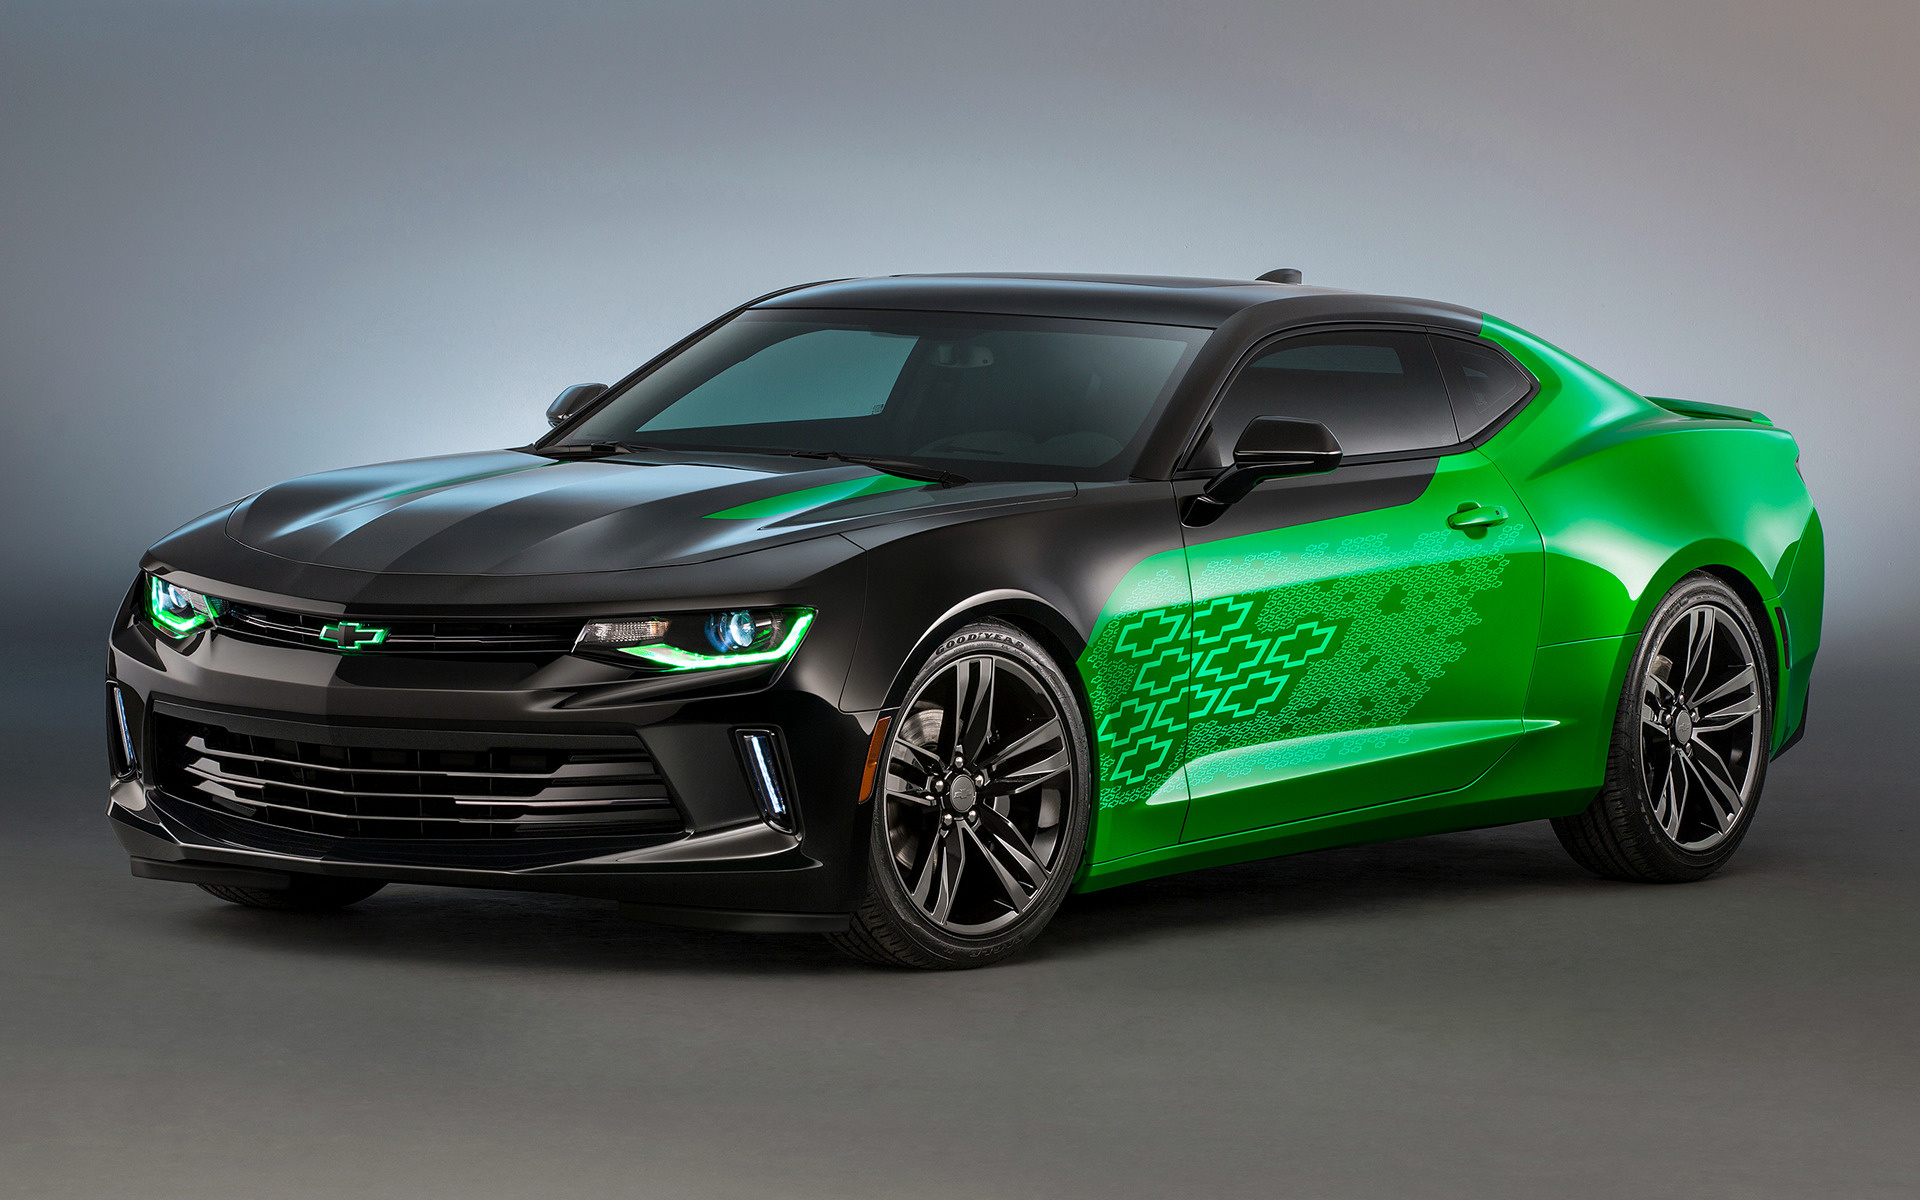 Who Makes Cadillac >> Chevrolet Camaro Krypton Concept (2015) Wallpapers and HD ...